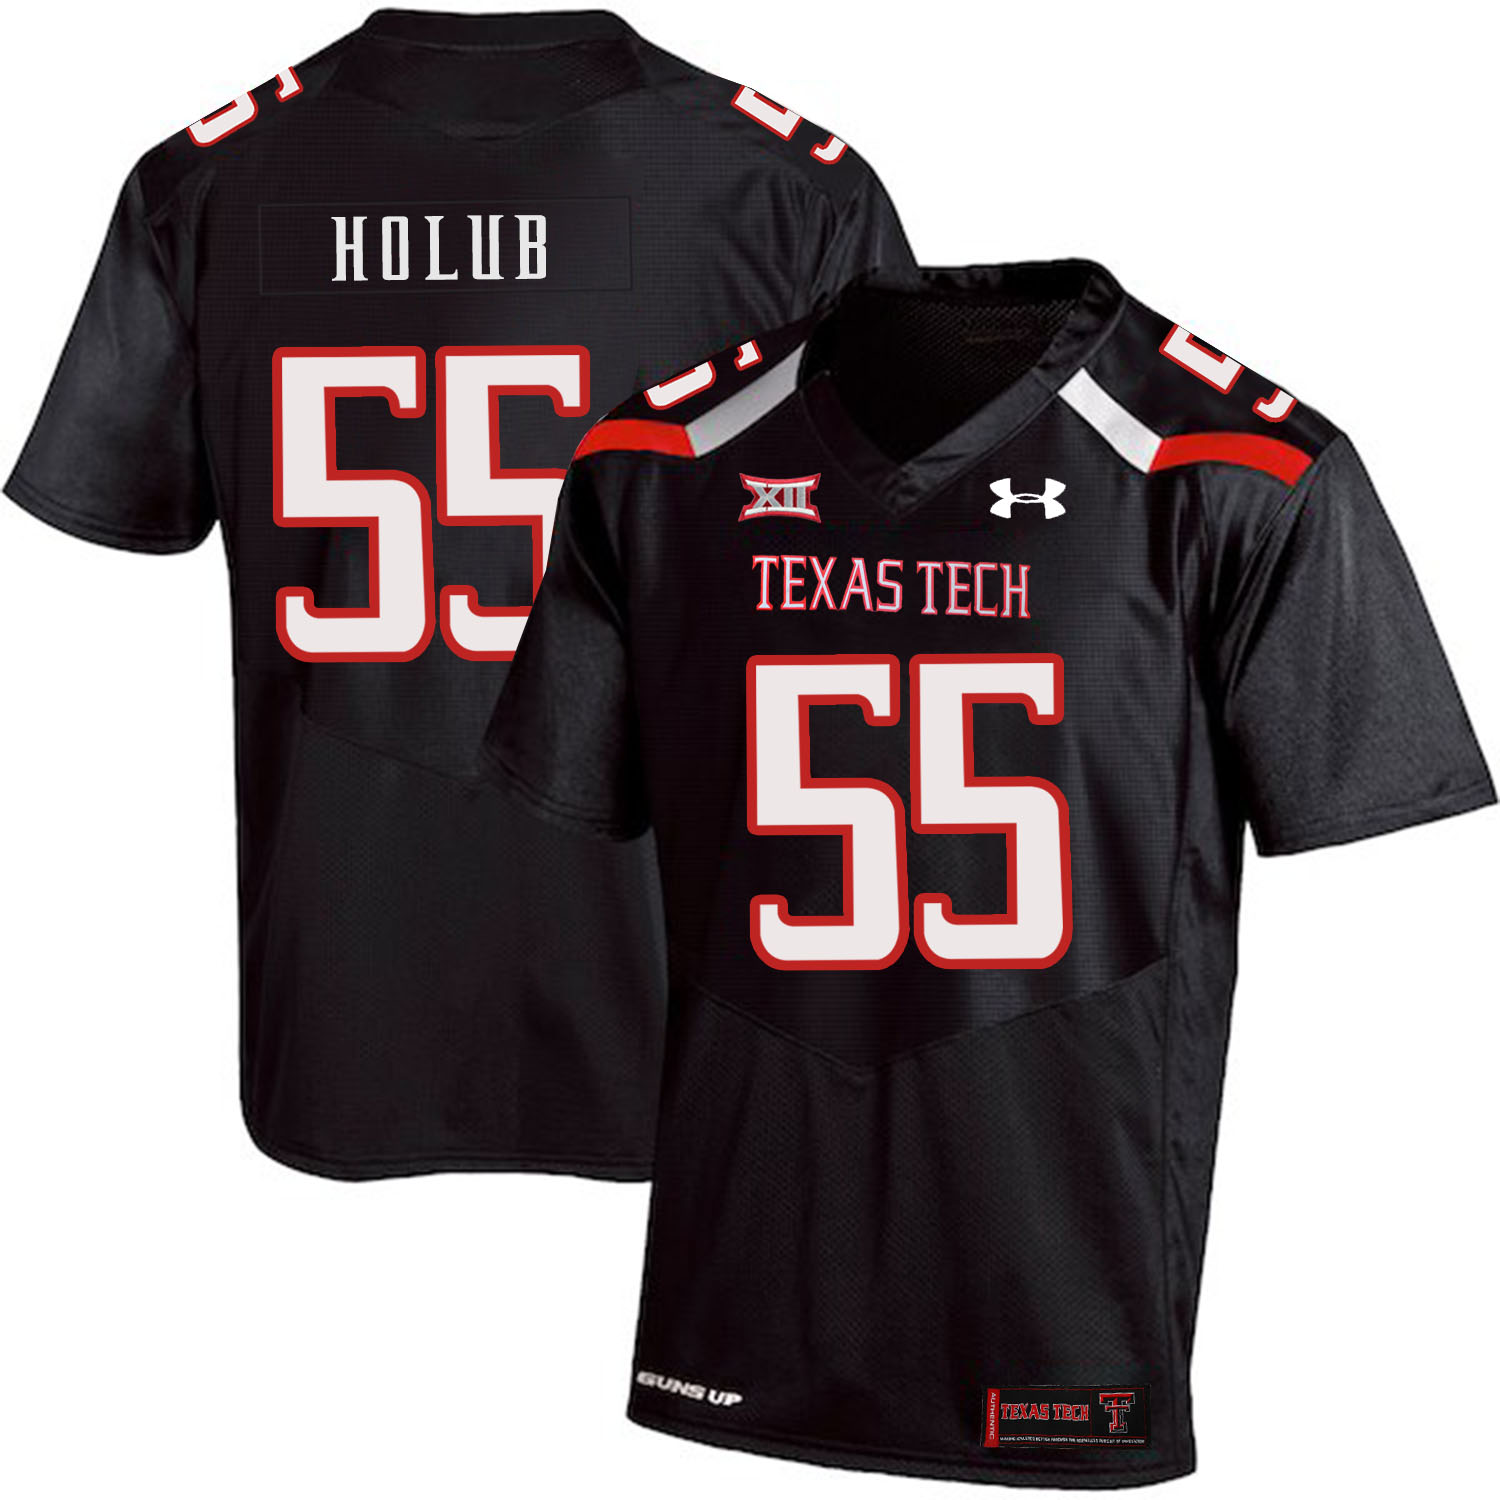 Texas Tech Red Raiders 55 E.J. Holub Black College Football Jersey